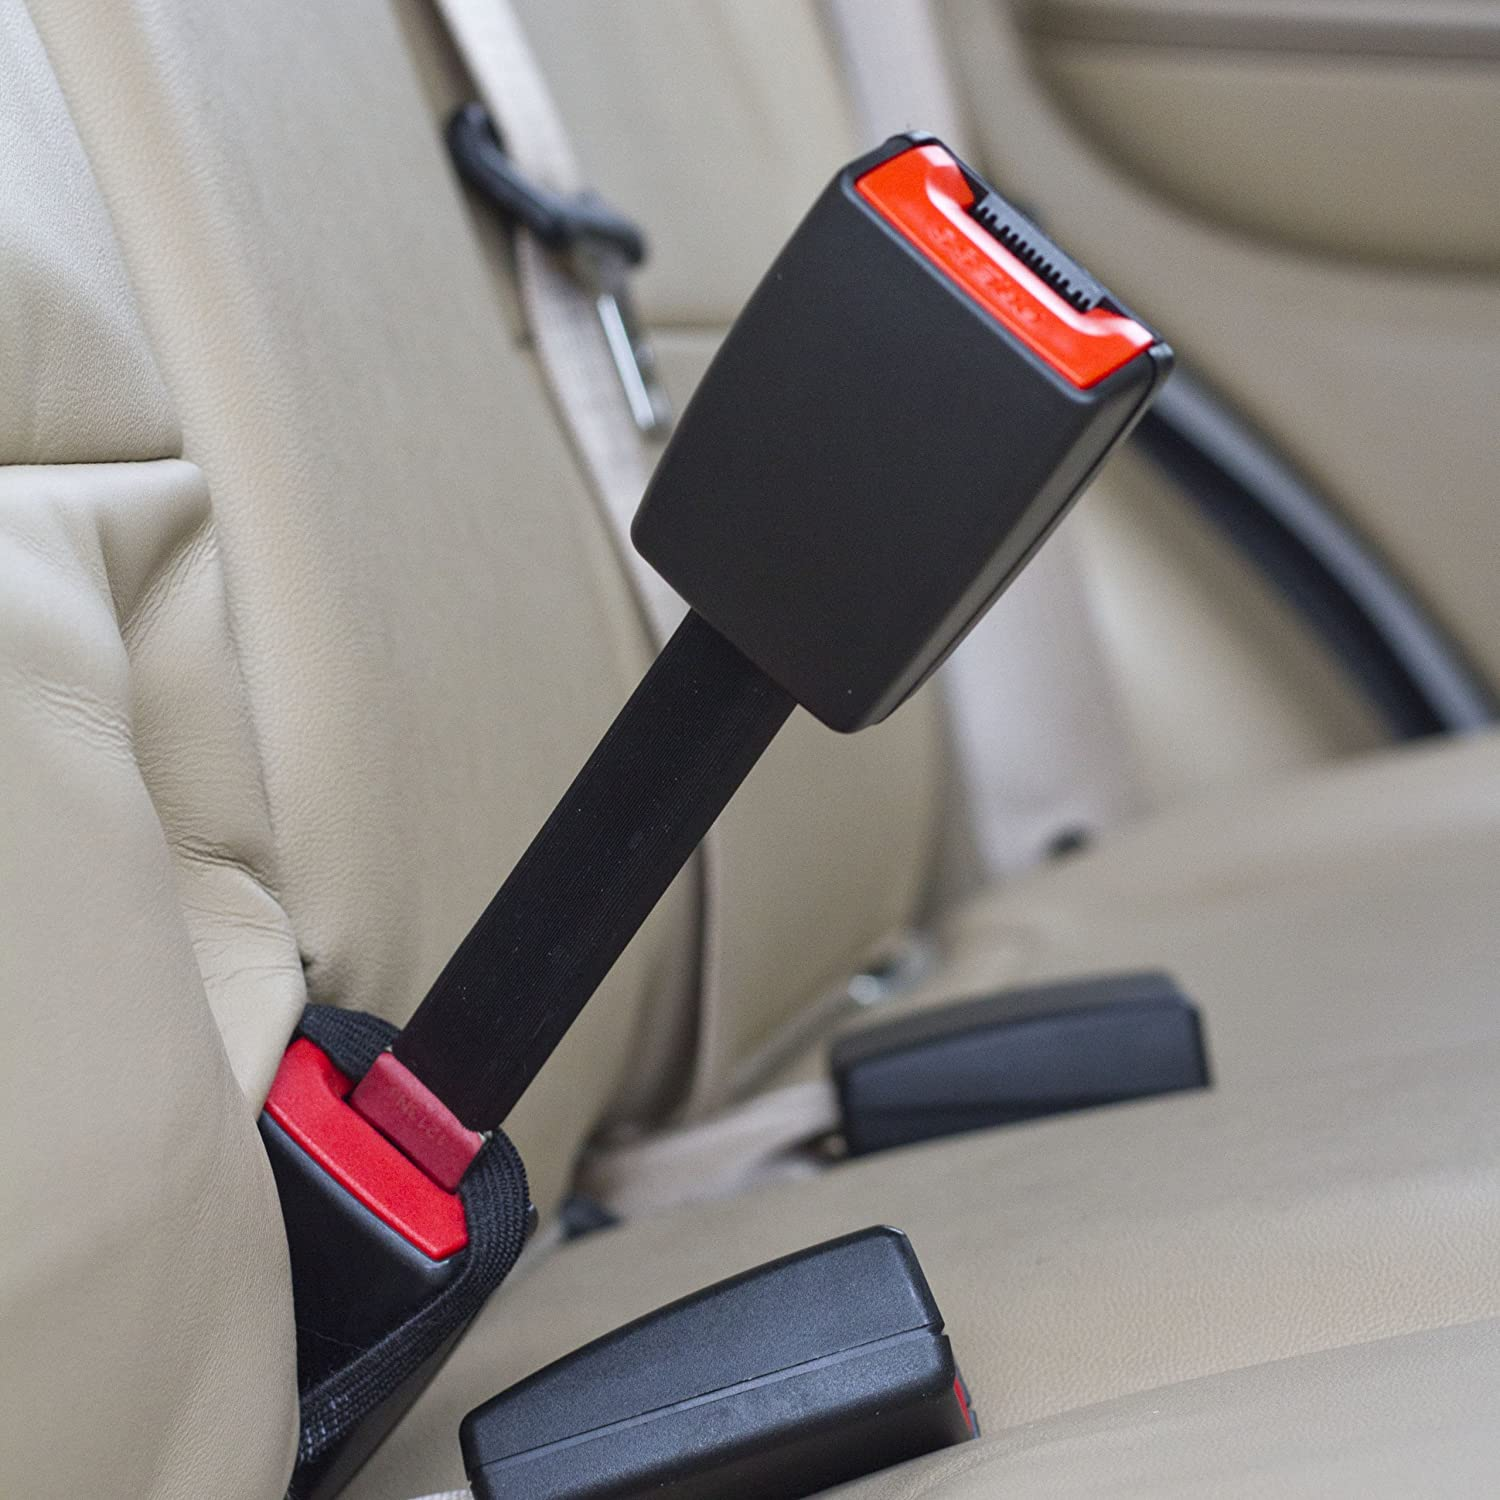 3-Pack Rigid 7 Seat Belt Lengthening Accessory with 7//8 Inch Metal Tongue Width E-Mark Safety Certification Buckle Up and Drive Safely Again